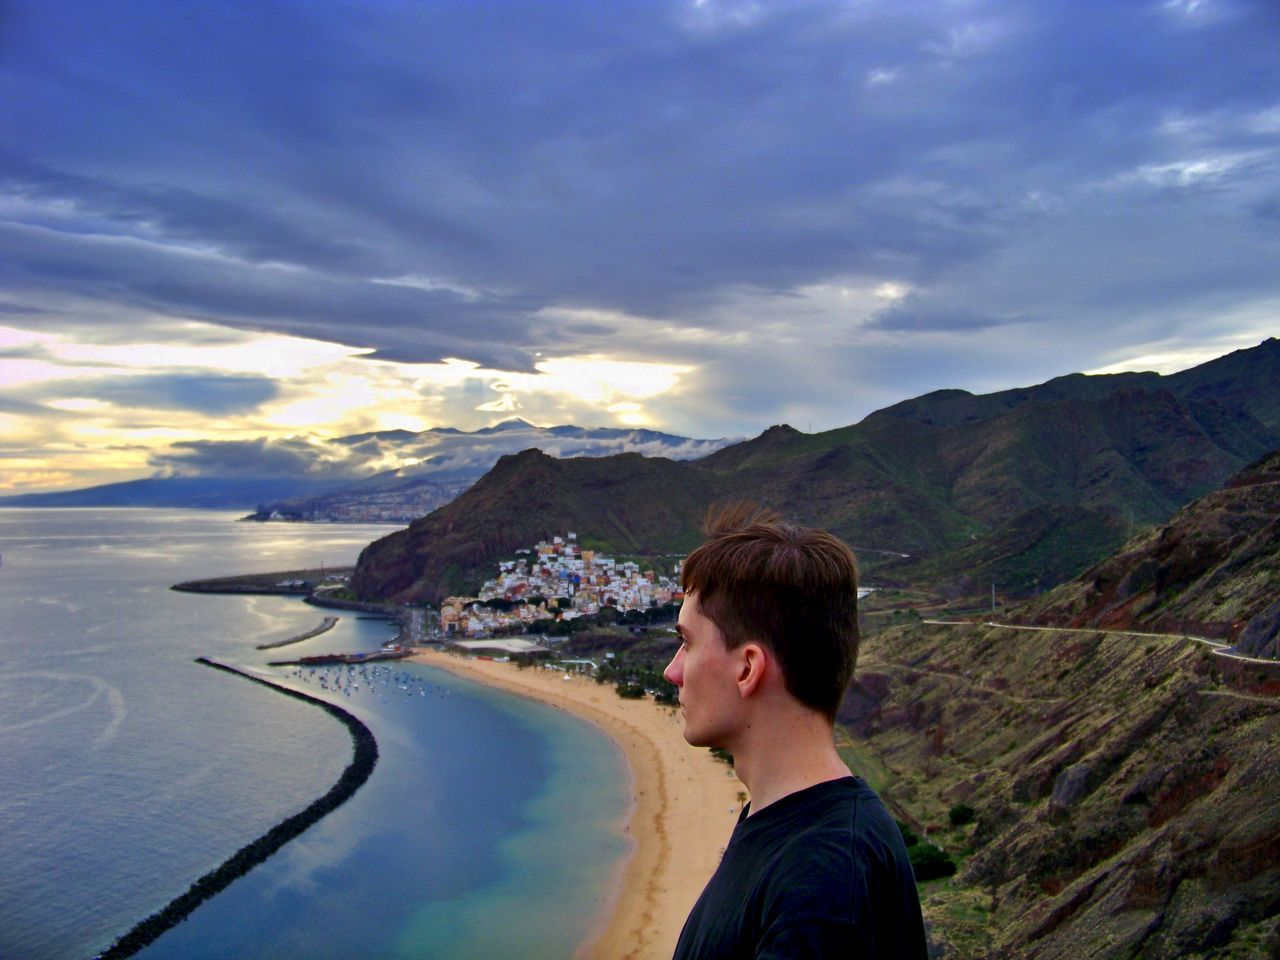 Beach Clouds And Sky Colorful Enjoying The View Las Teresitas Me Men Mountain Range Mountains My Year My View One Man Only Only Men Sea Sea And Sky Seaside Shore Sunlight Sunset Tenerife Travel Destination Travel Destinations Traveling Vacations Viewpoint Young Adult